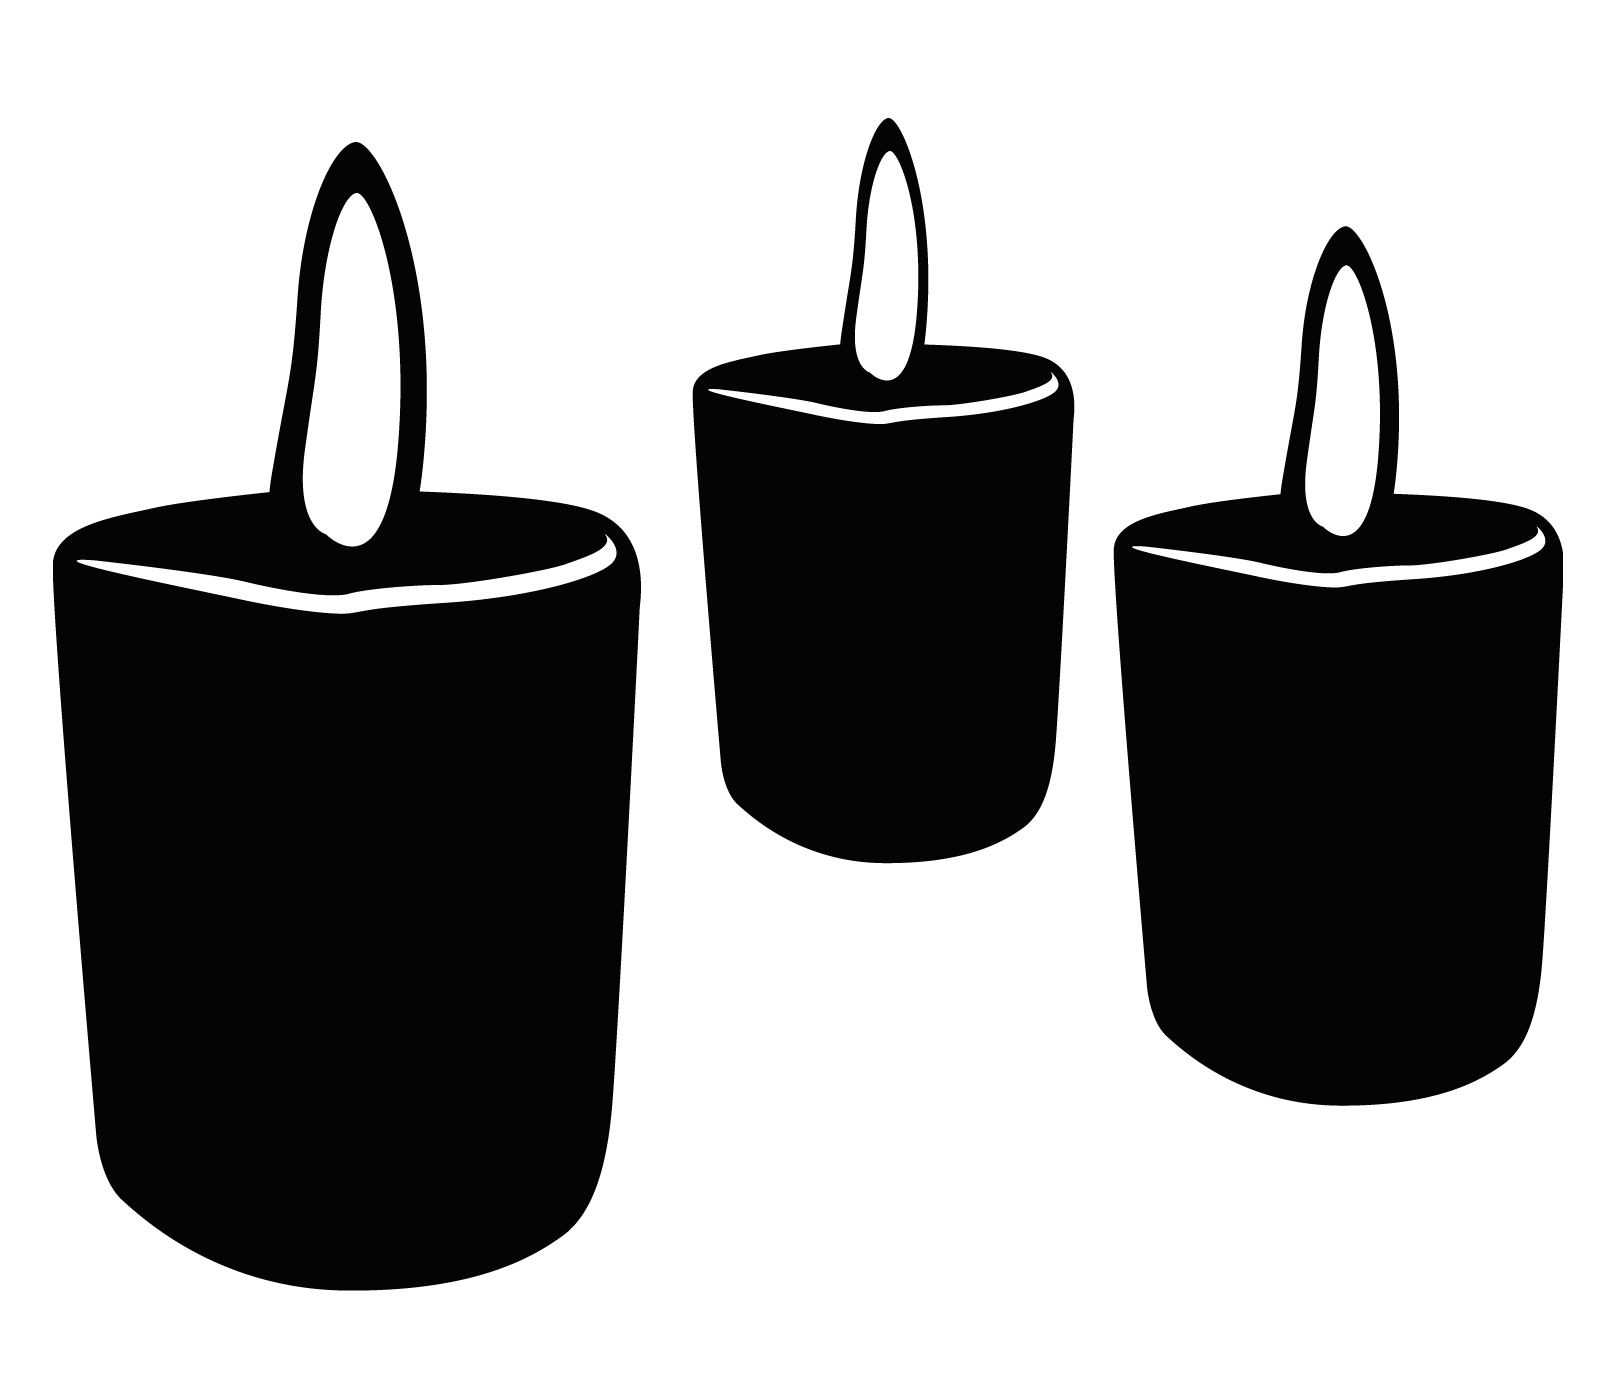 Candle Clip Art Black And White - Cliparts.co